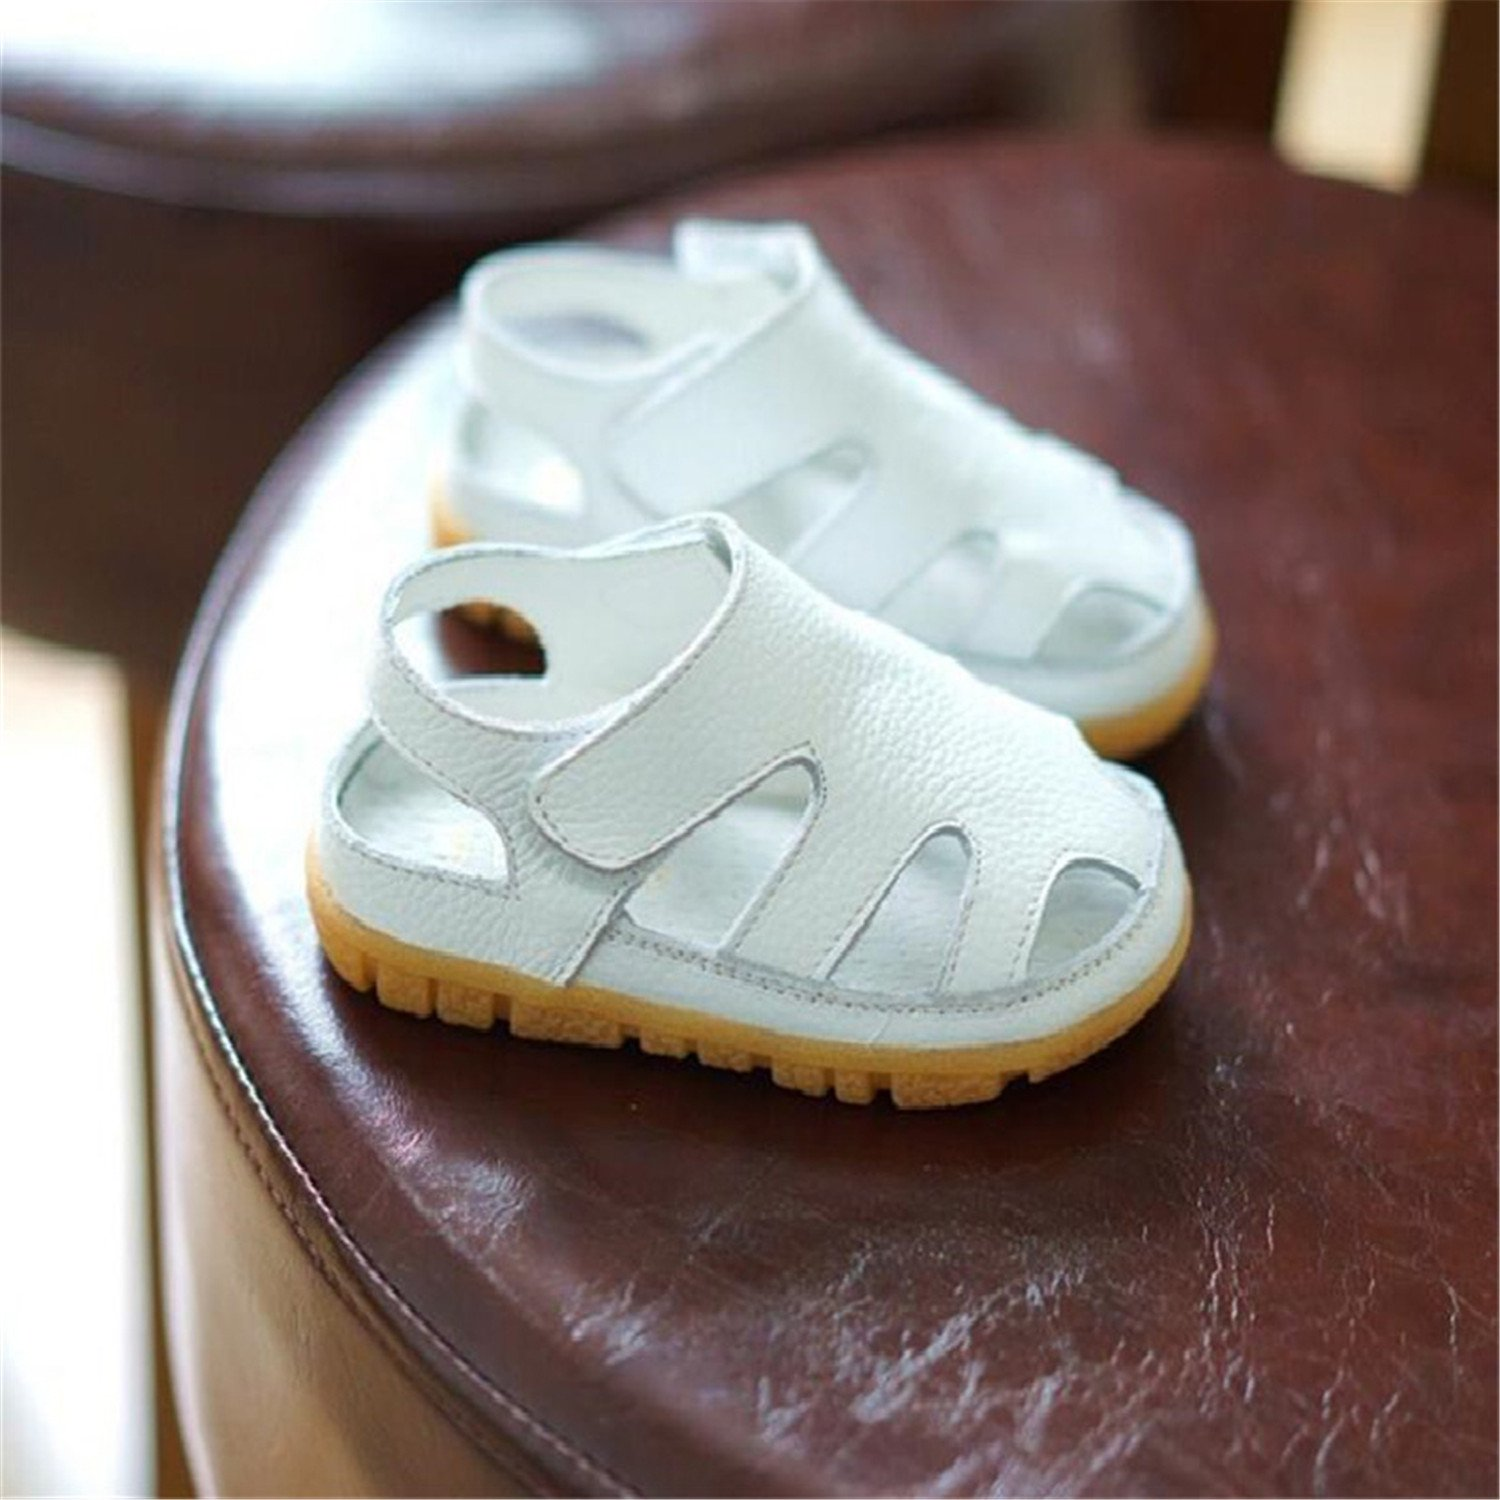 Aworth Fashion Casual Boys Girls Sandal for Baby Shoes Anti-Slip Children Sandals Guinea Pigs Brand White Pink White 2